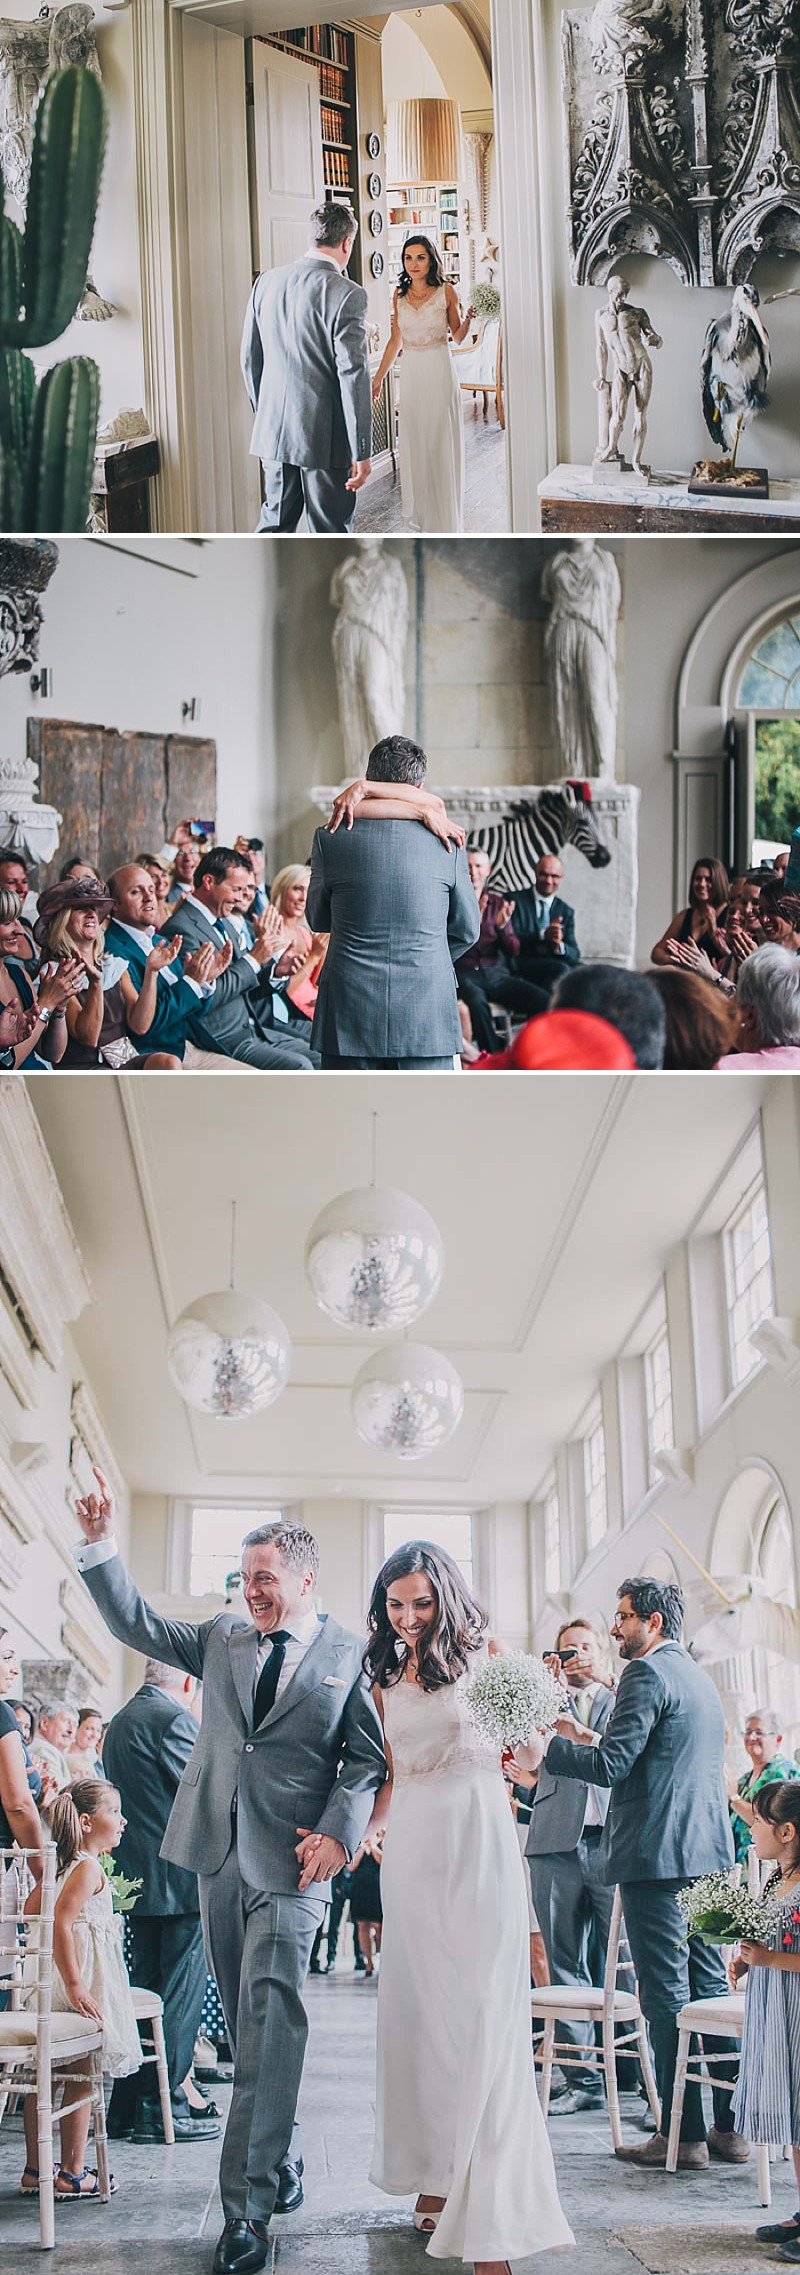 A contemporary wedding at an unusual wedding venue Aynhoe Park with taxidermy decor and dress by Emily Garrod_0010